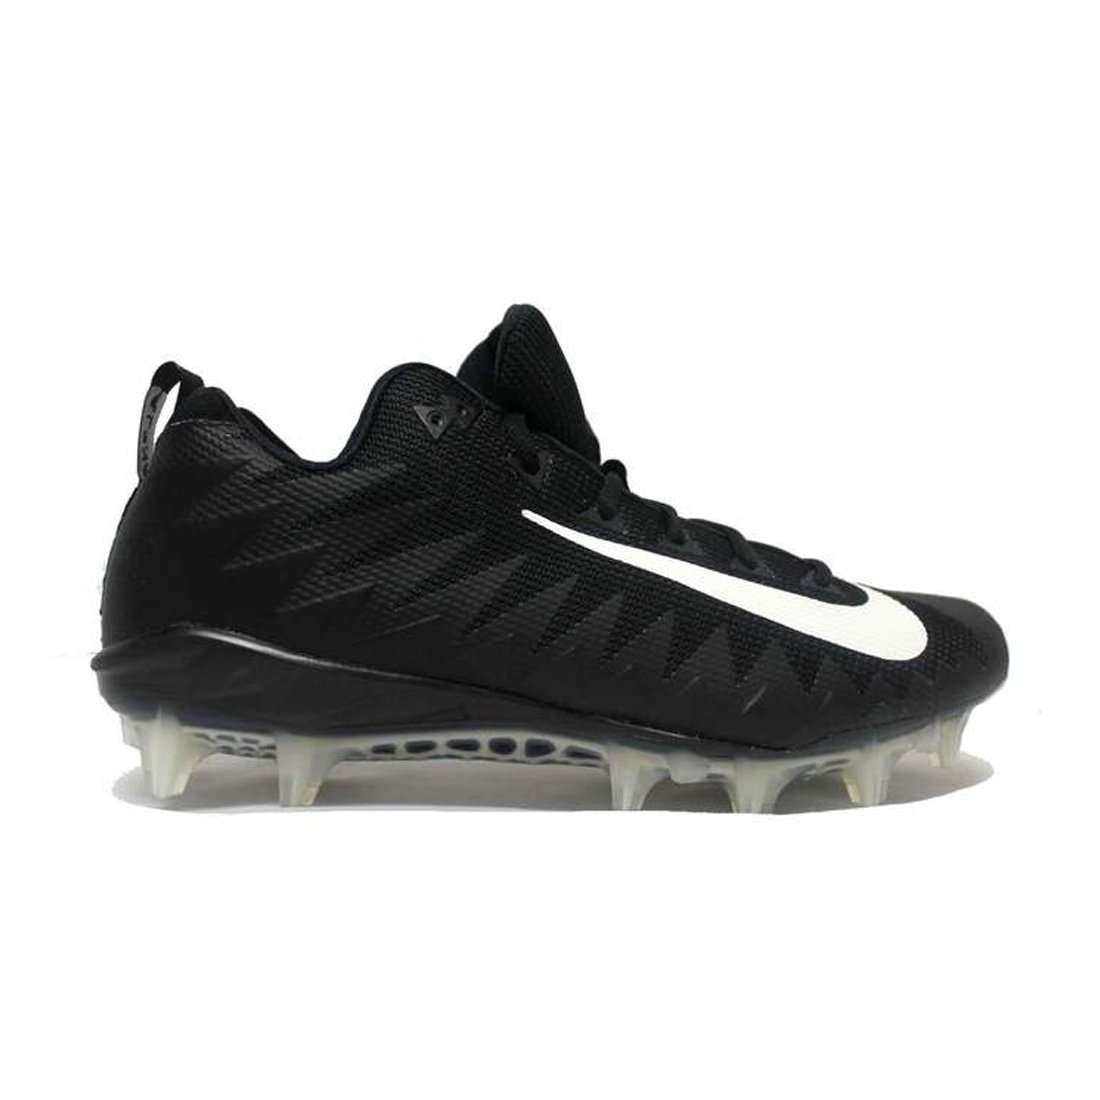 f083bece7fd Nike Alpha Menace Pro Low TD PF Football Cleats – League Outfitters